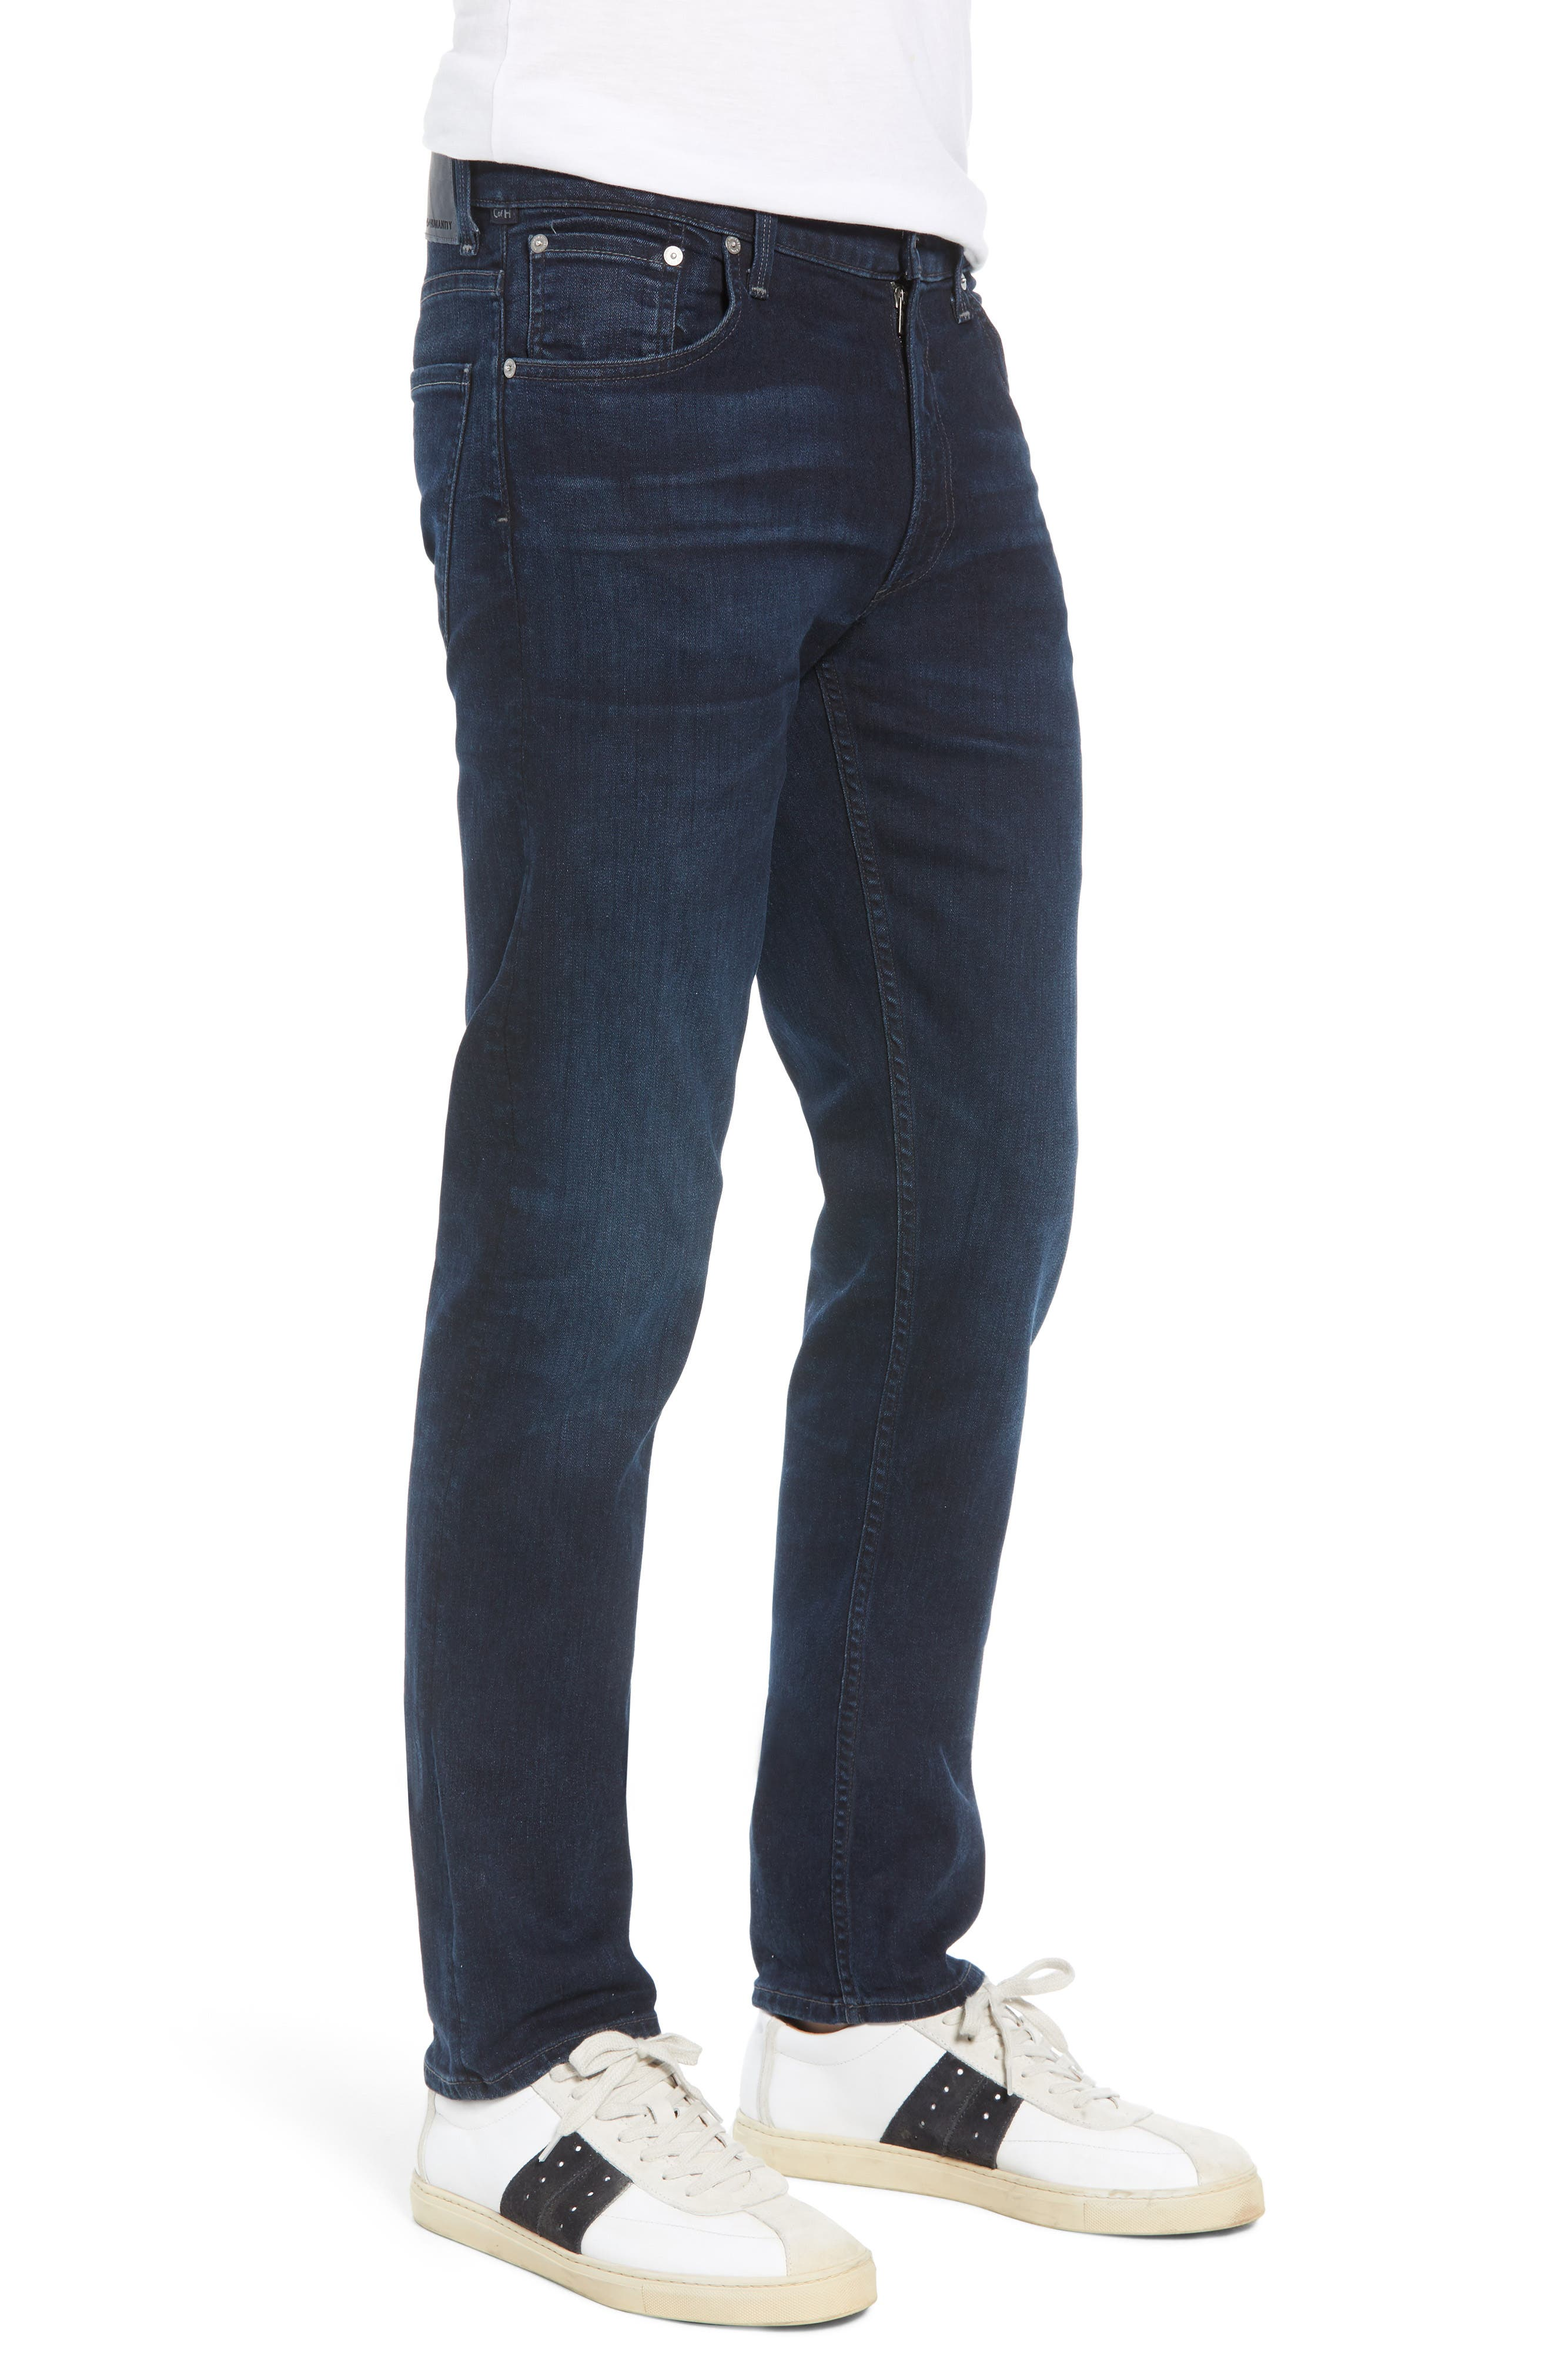 Bowery Slim Fit Jeans,                             Alternate thumbnail 3, color,                             407